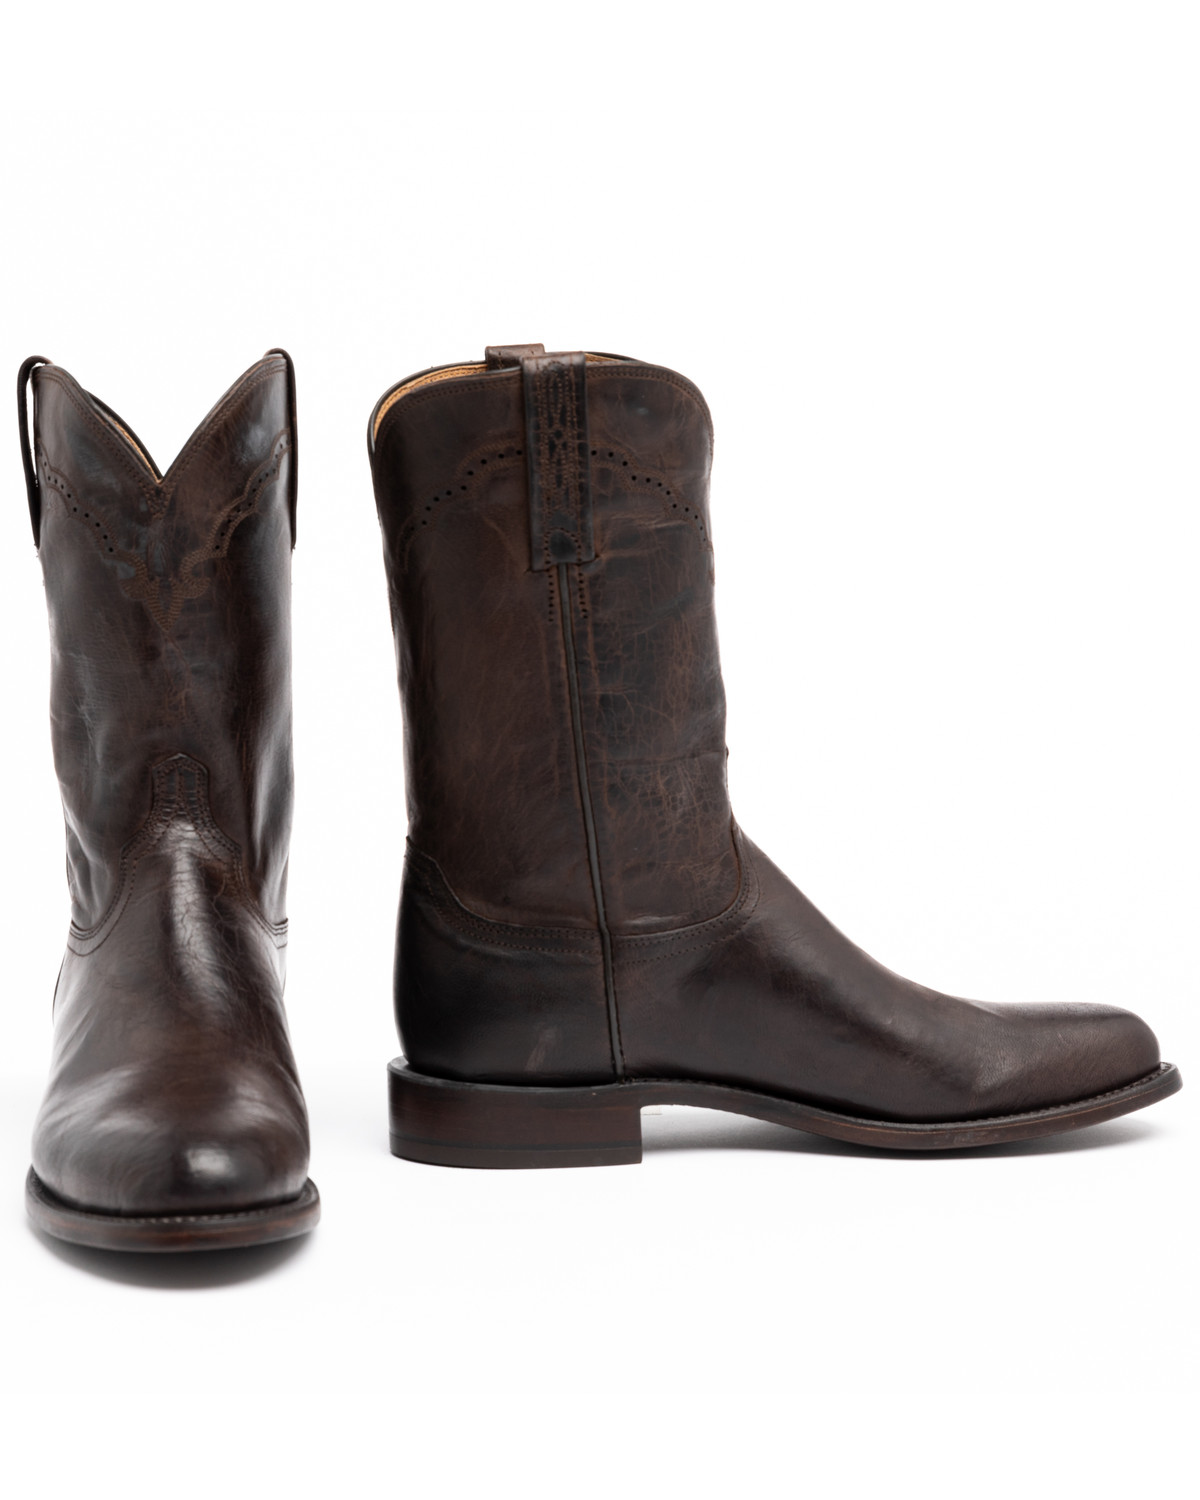 Lucchese 1883 Madras Goat Roper Boots Round Toe Sheplers